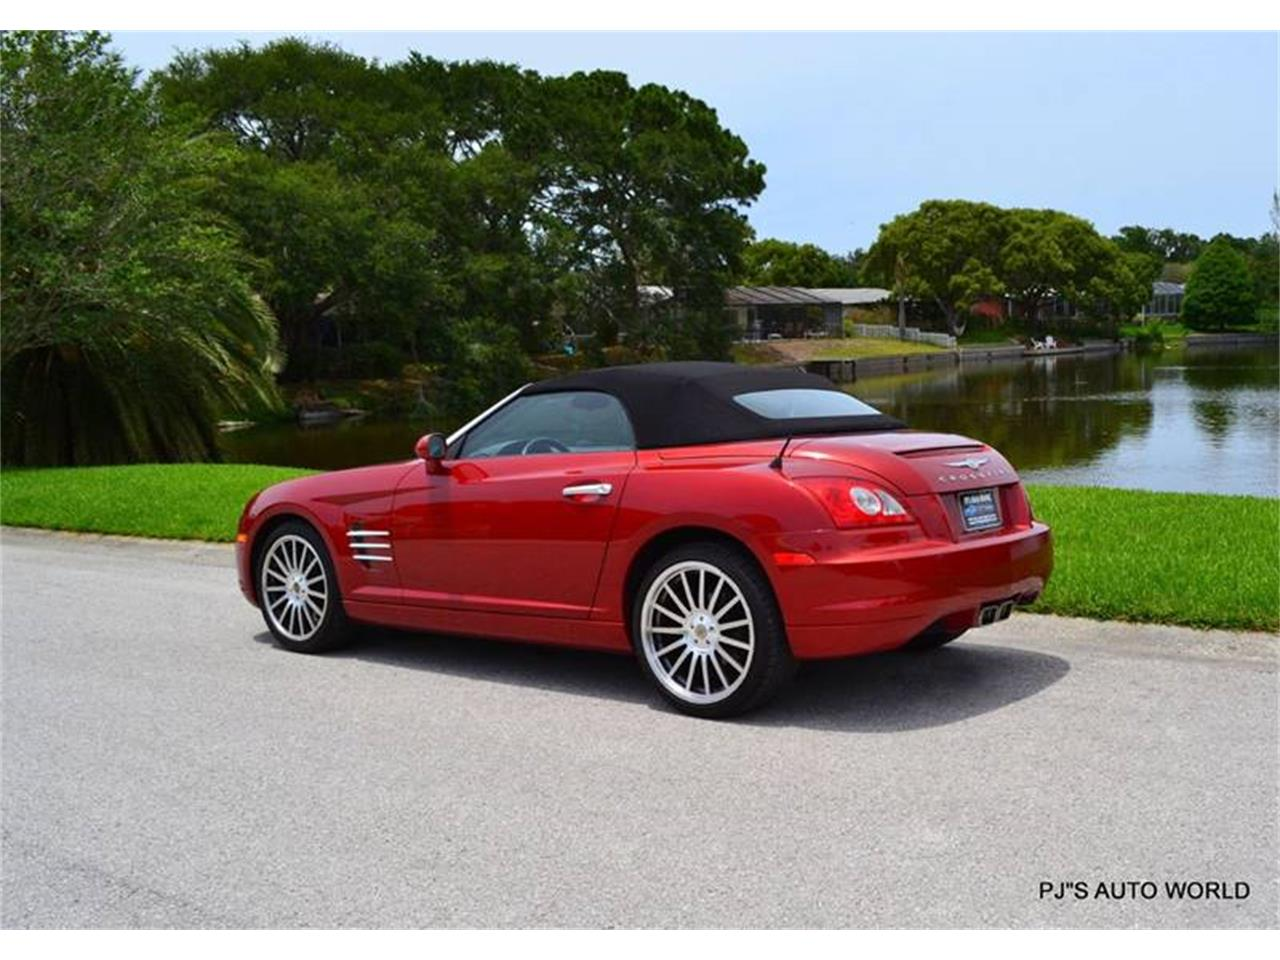 Large Picture of 2005 Chrysler Crossfire located in Florida - $10,900.00 - L7XM